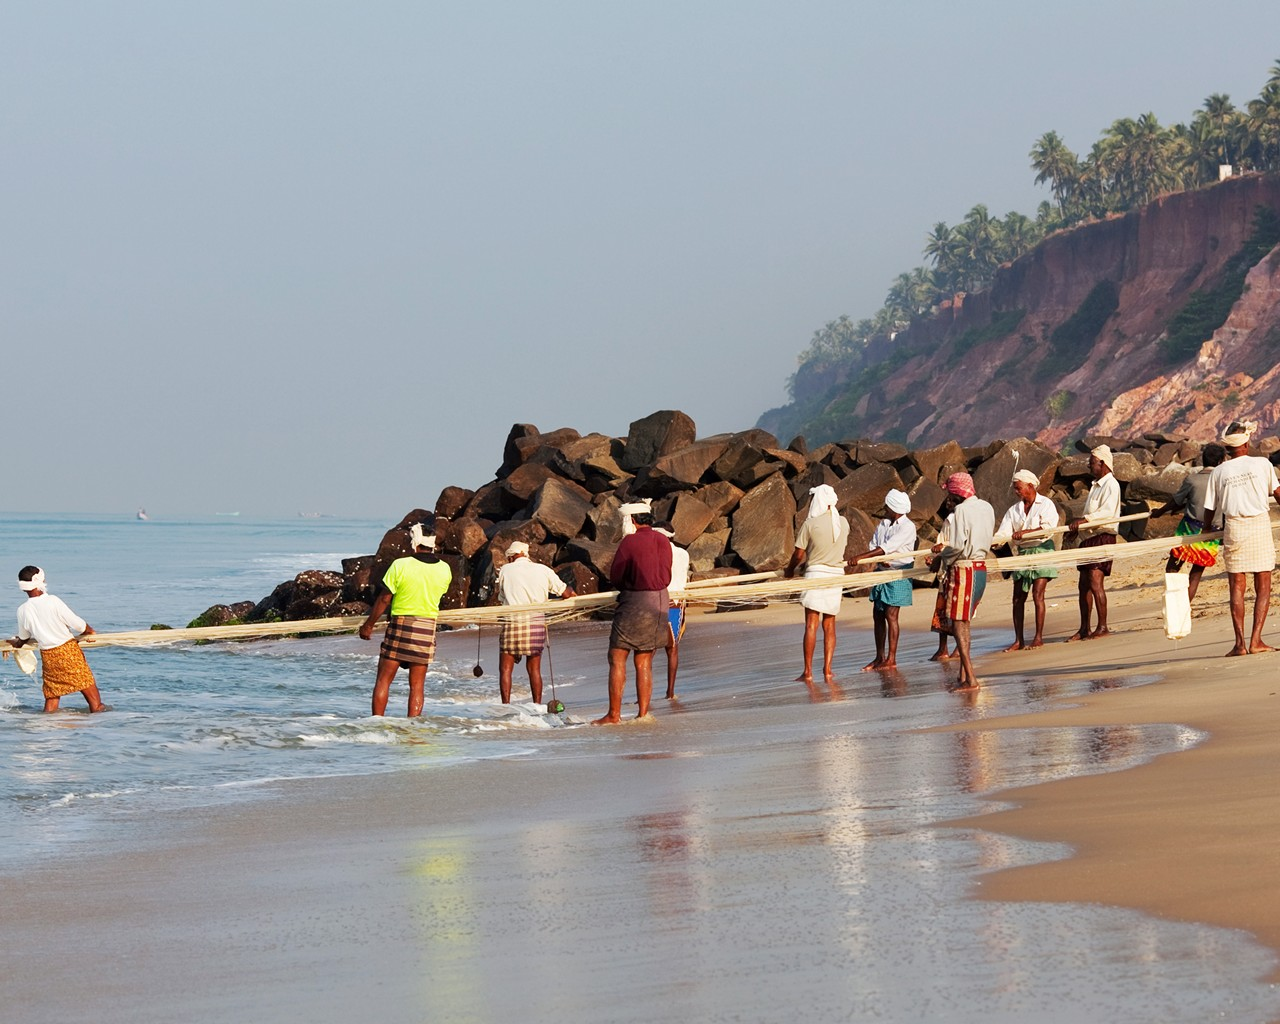 Fishermen in Kerala state, South India